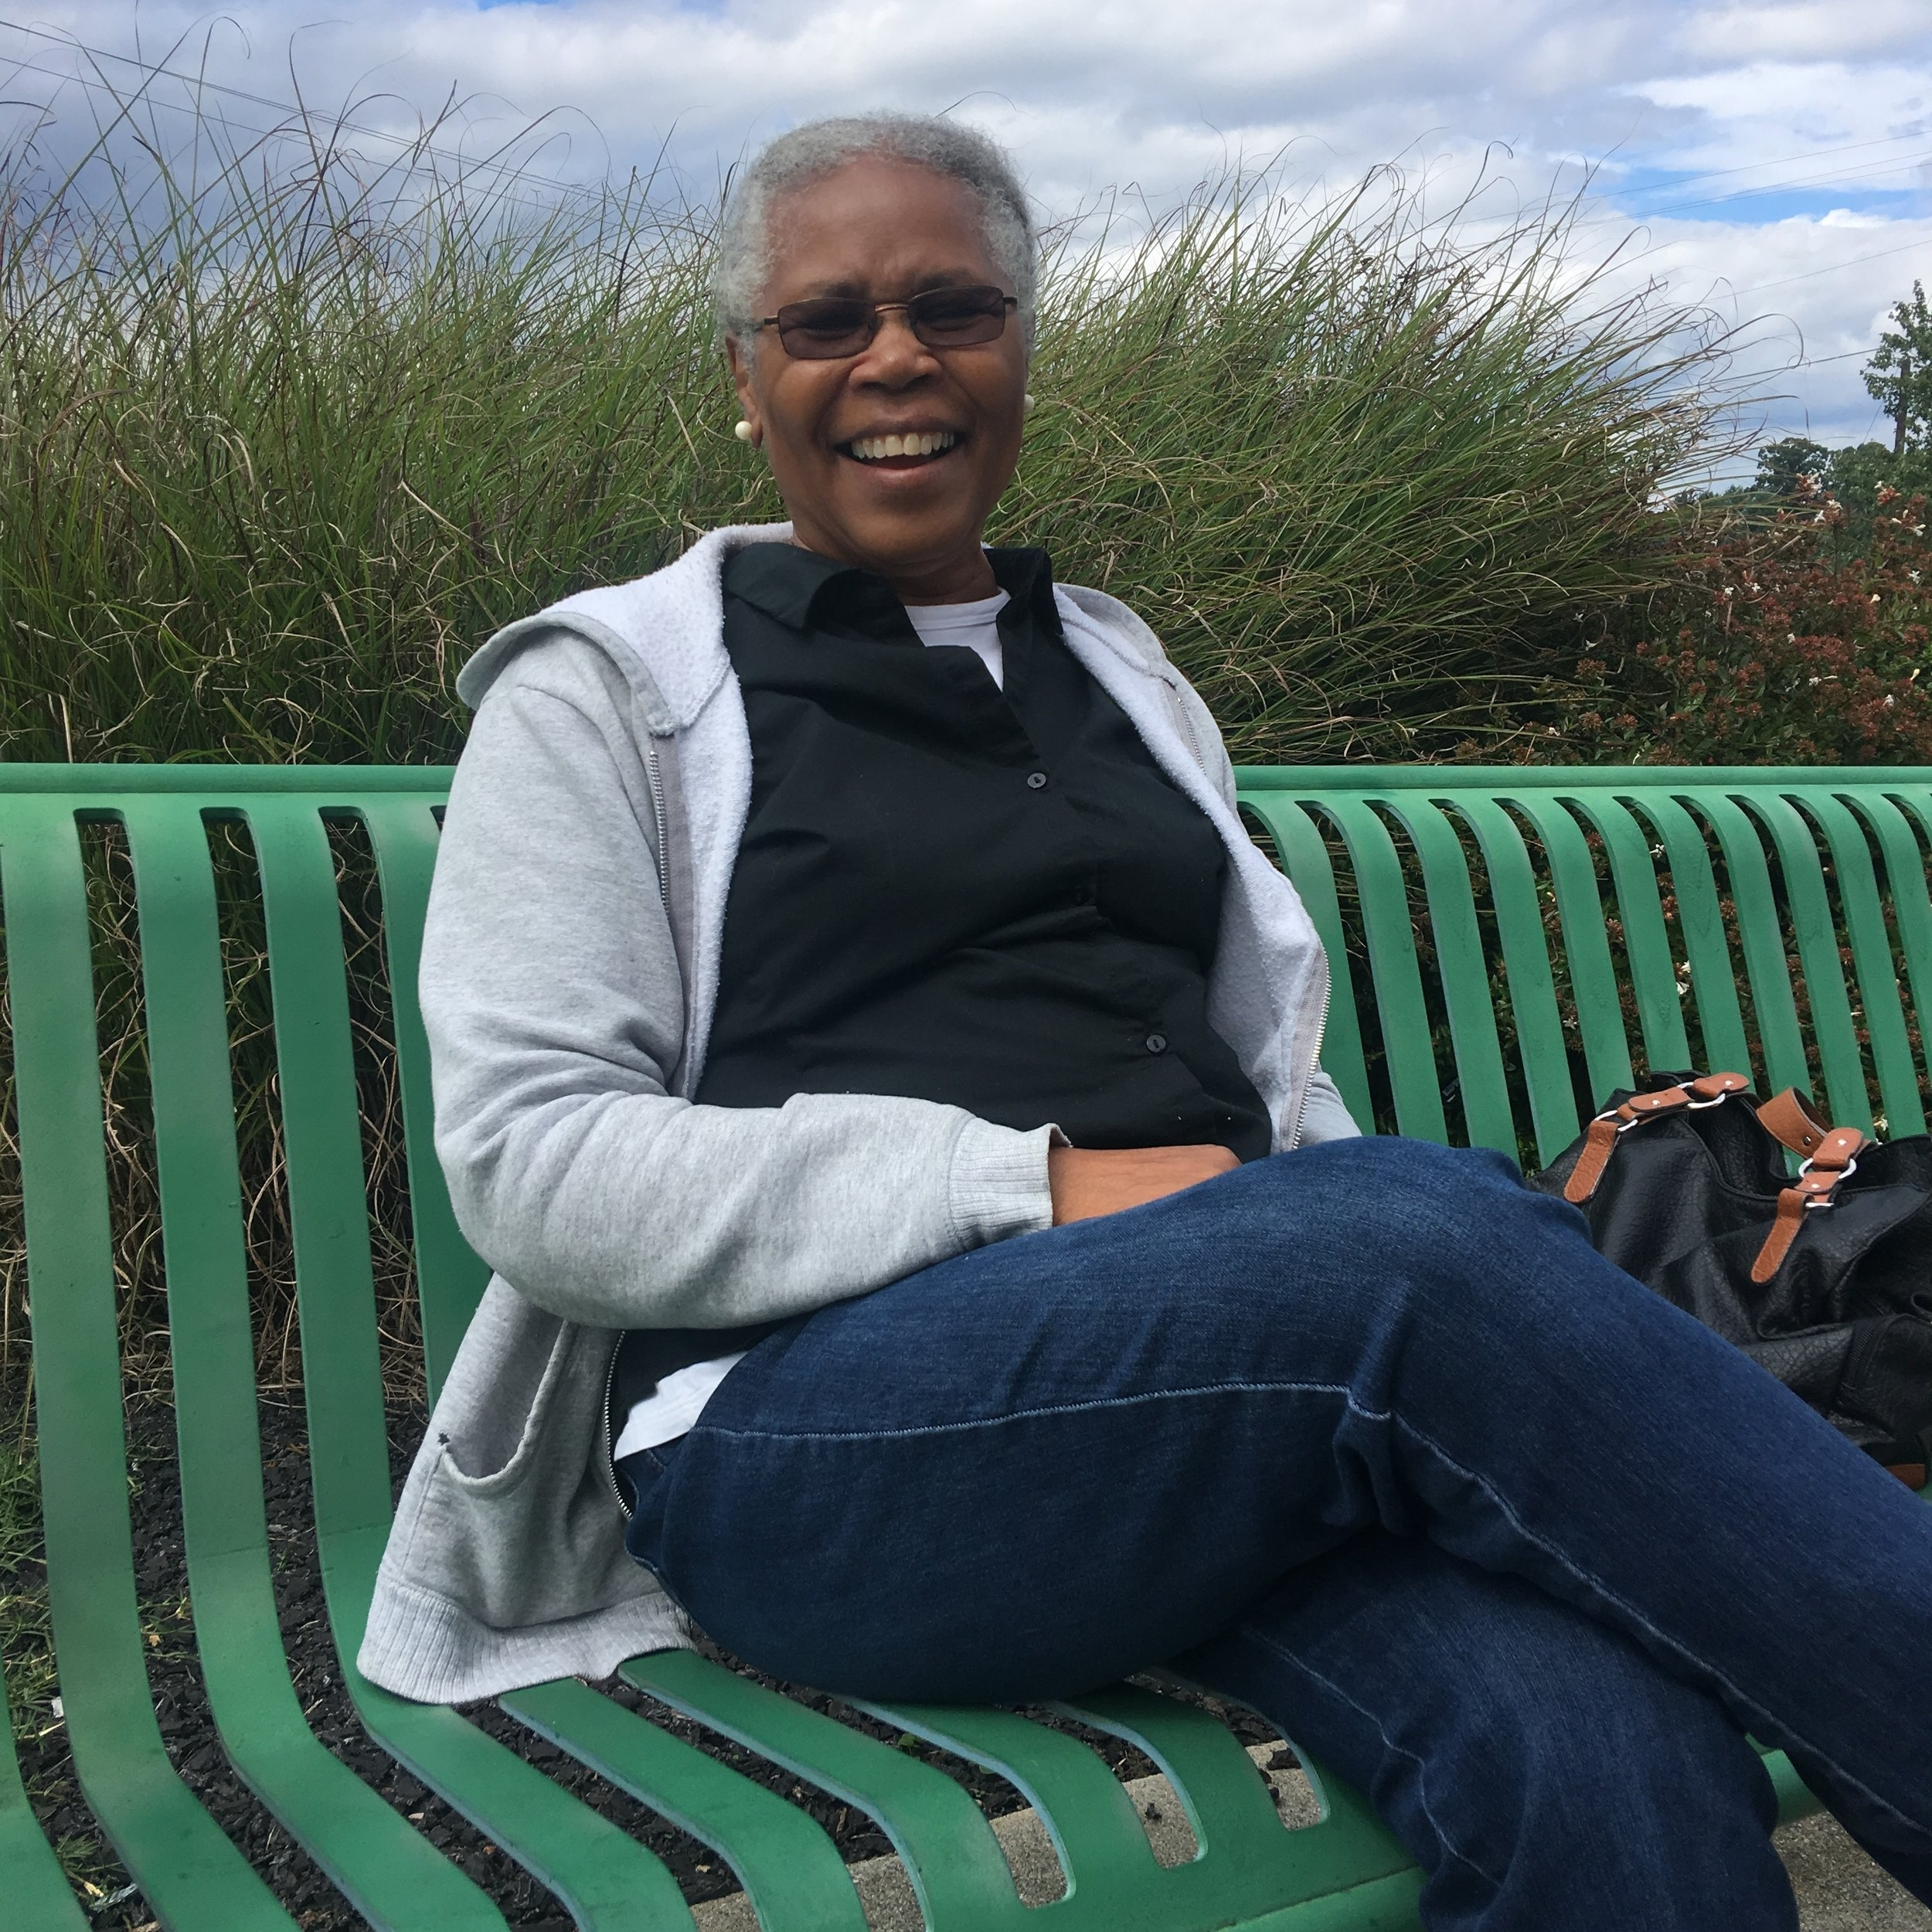 Rosa DeLoatch - Philanthropist of the Year - 2018Rosa DeLoatch has been a monthly donor to CASA of Central Virginia for more than a decade. Her passion for helping children is evident in talking with her yet she is so humble. When asked why she donates, she simply says